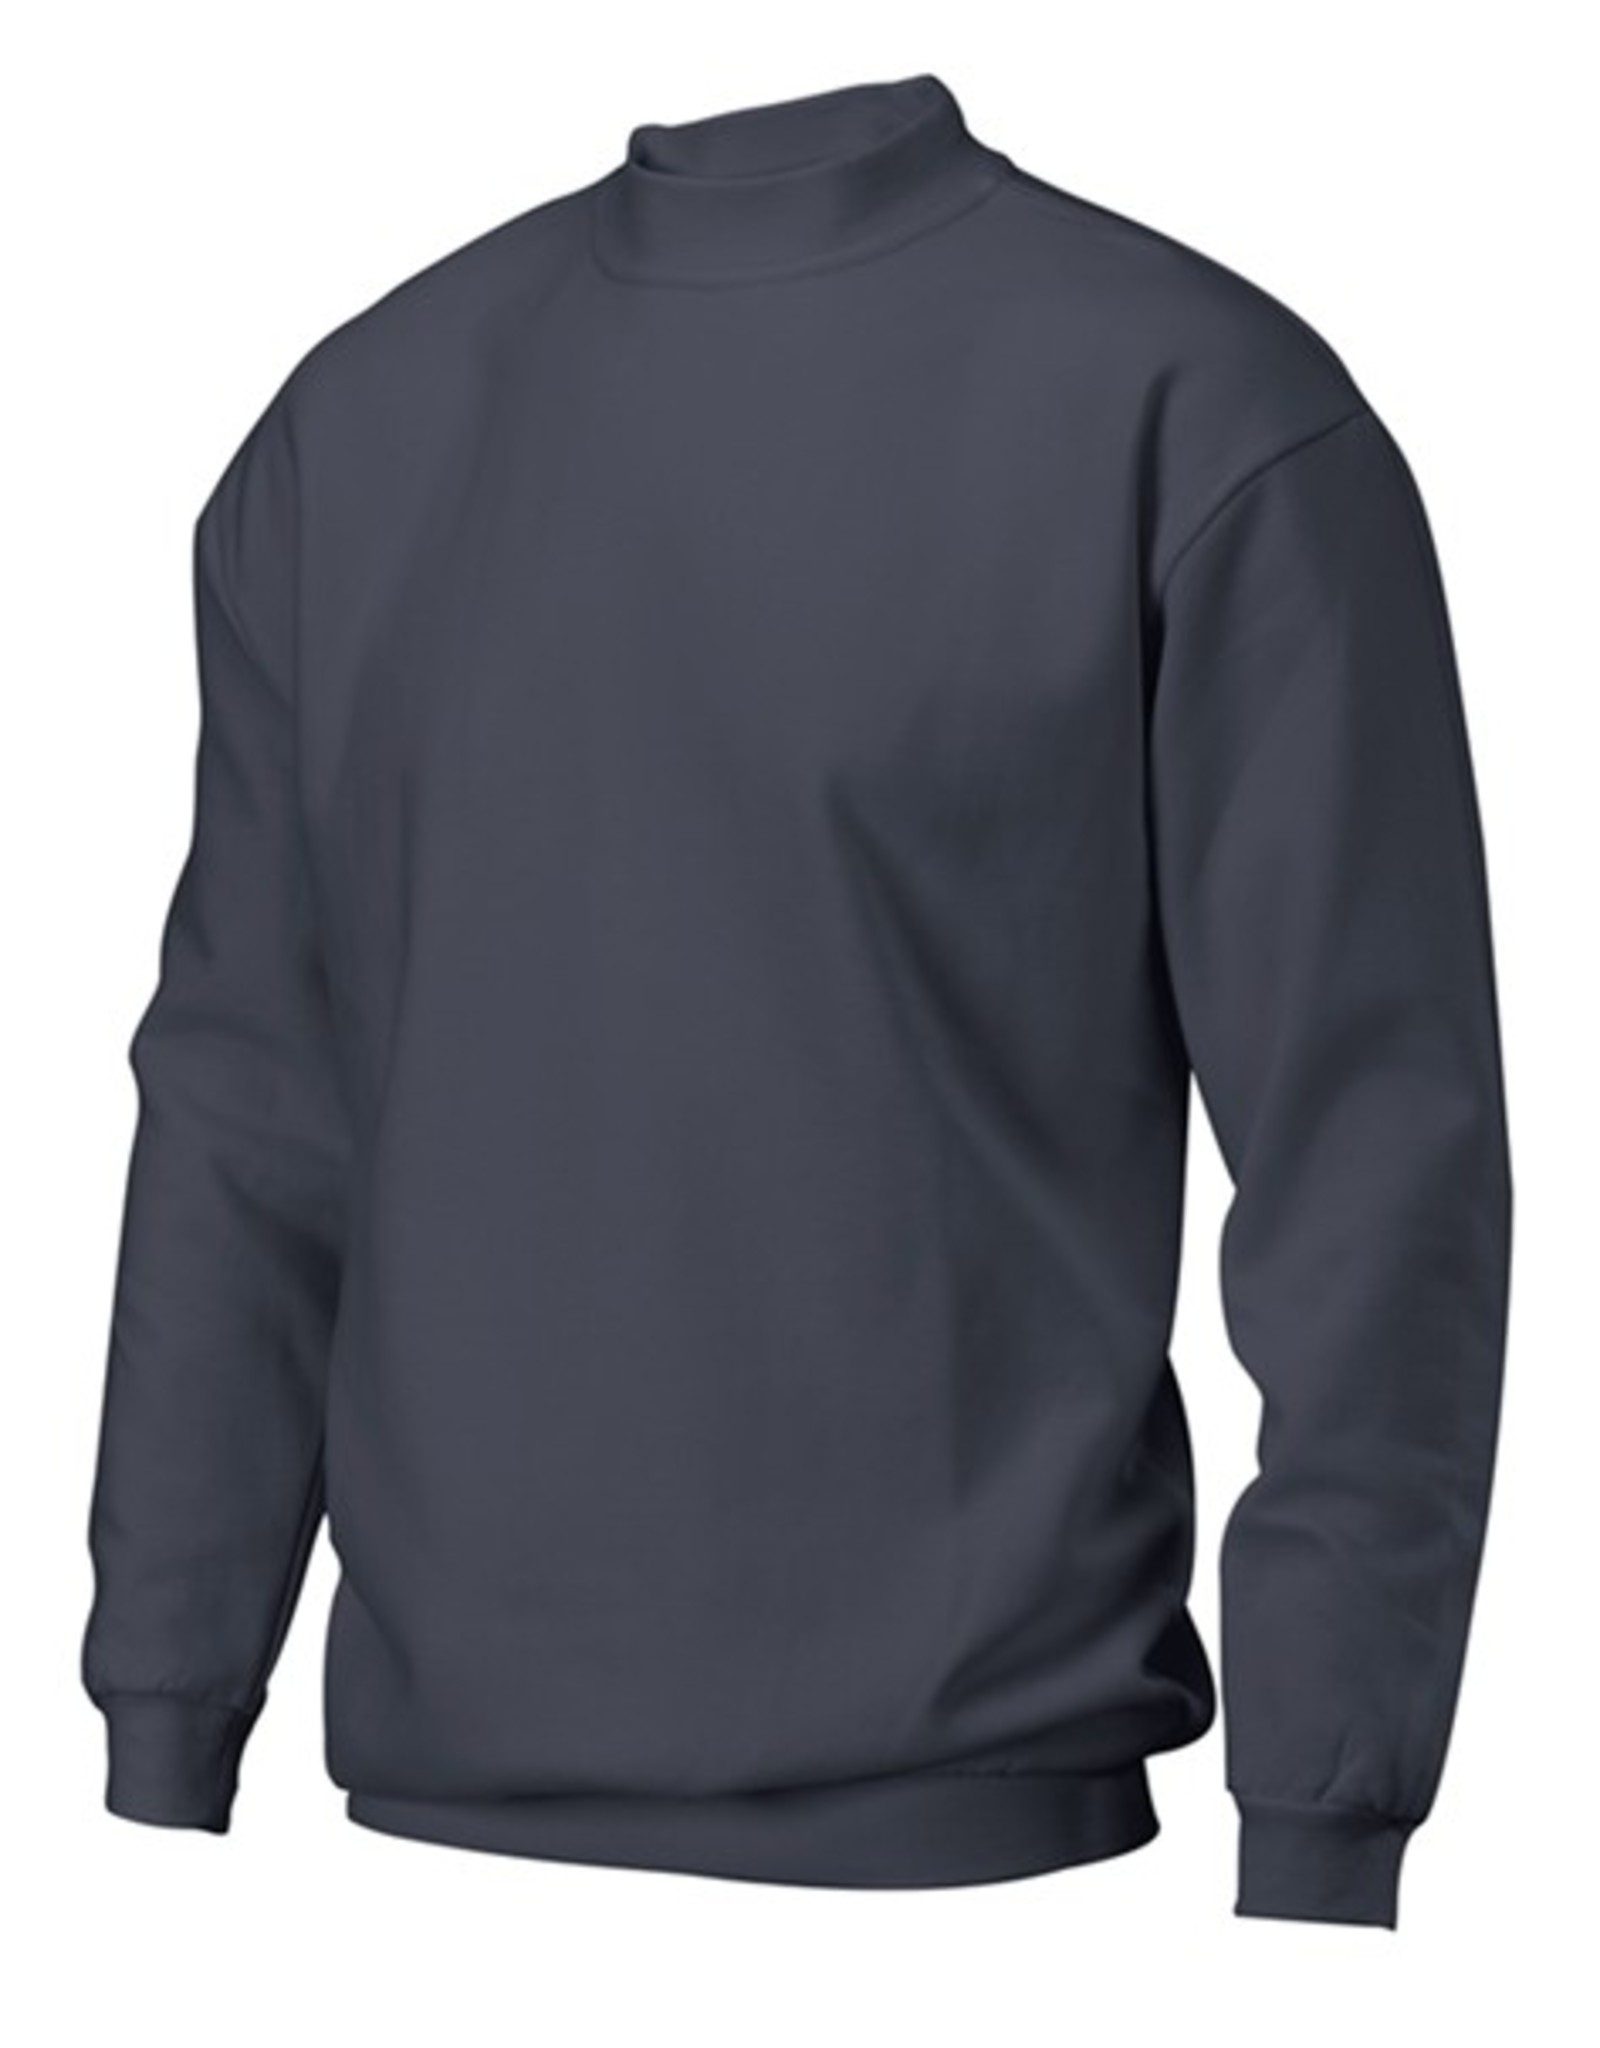 Tricorp Sweater S280 donker grijs